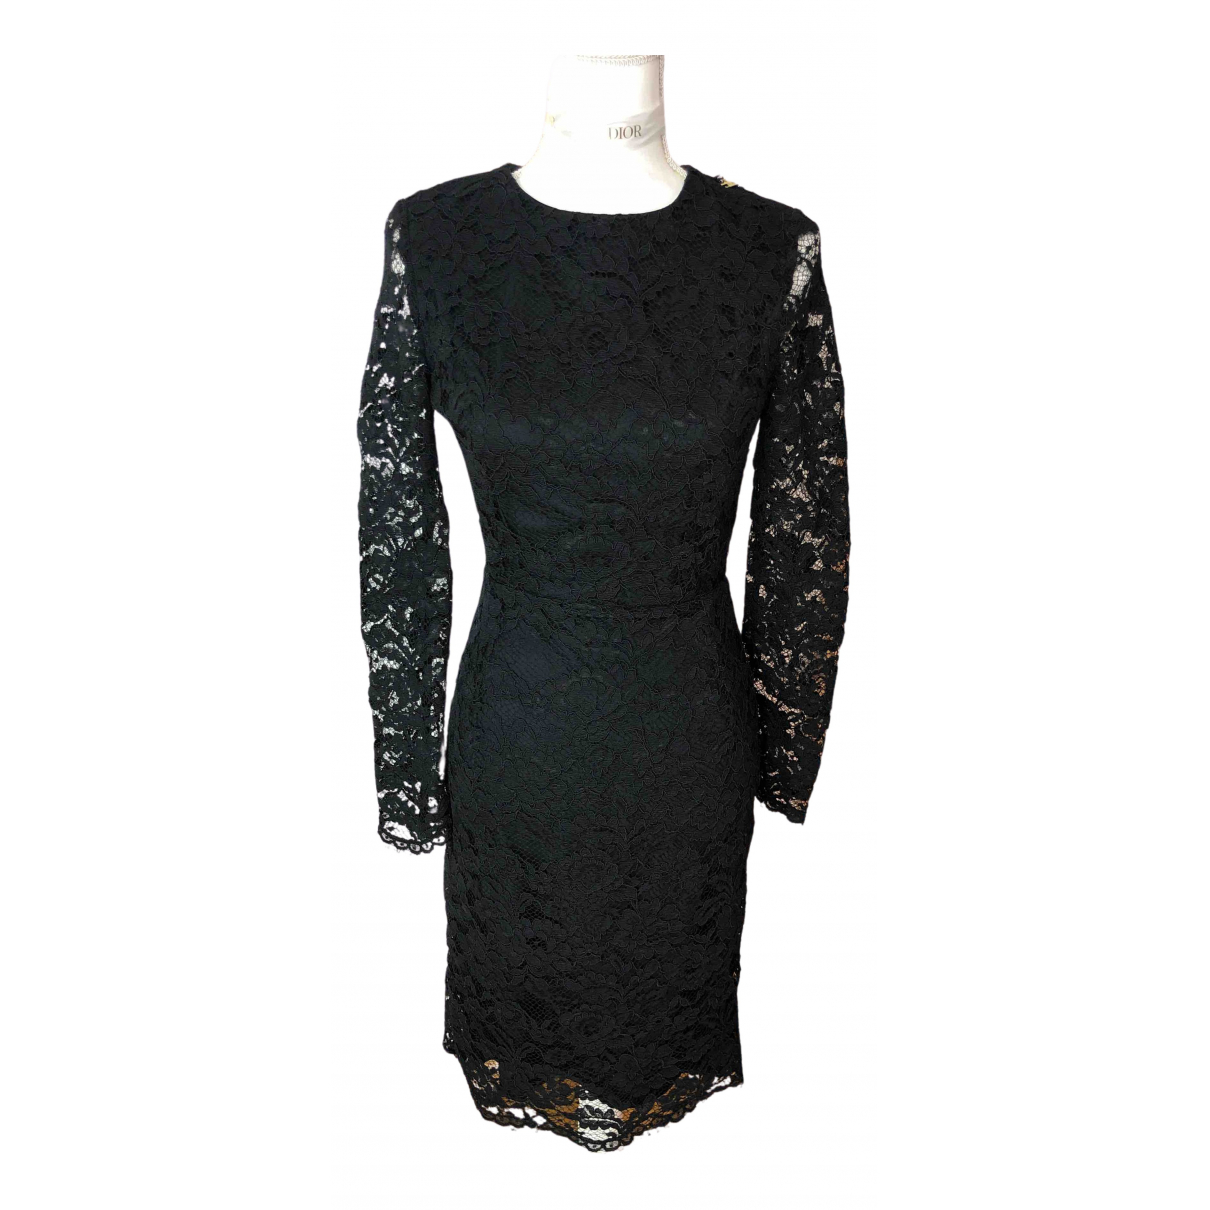 Elisabetta Franchi N Black dress for Women 40 IT